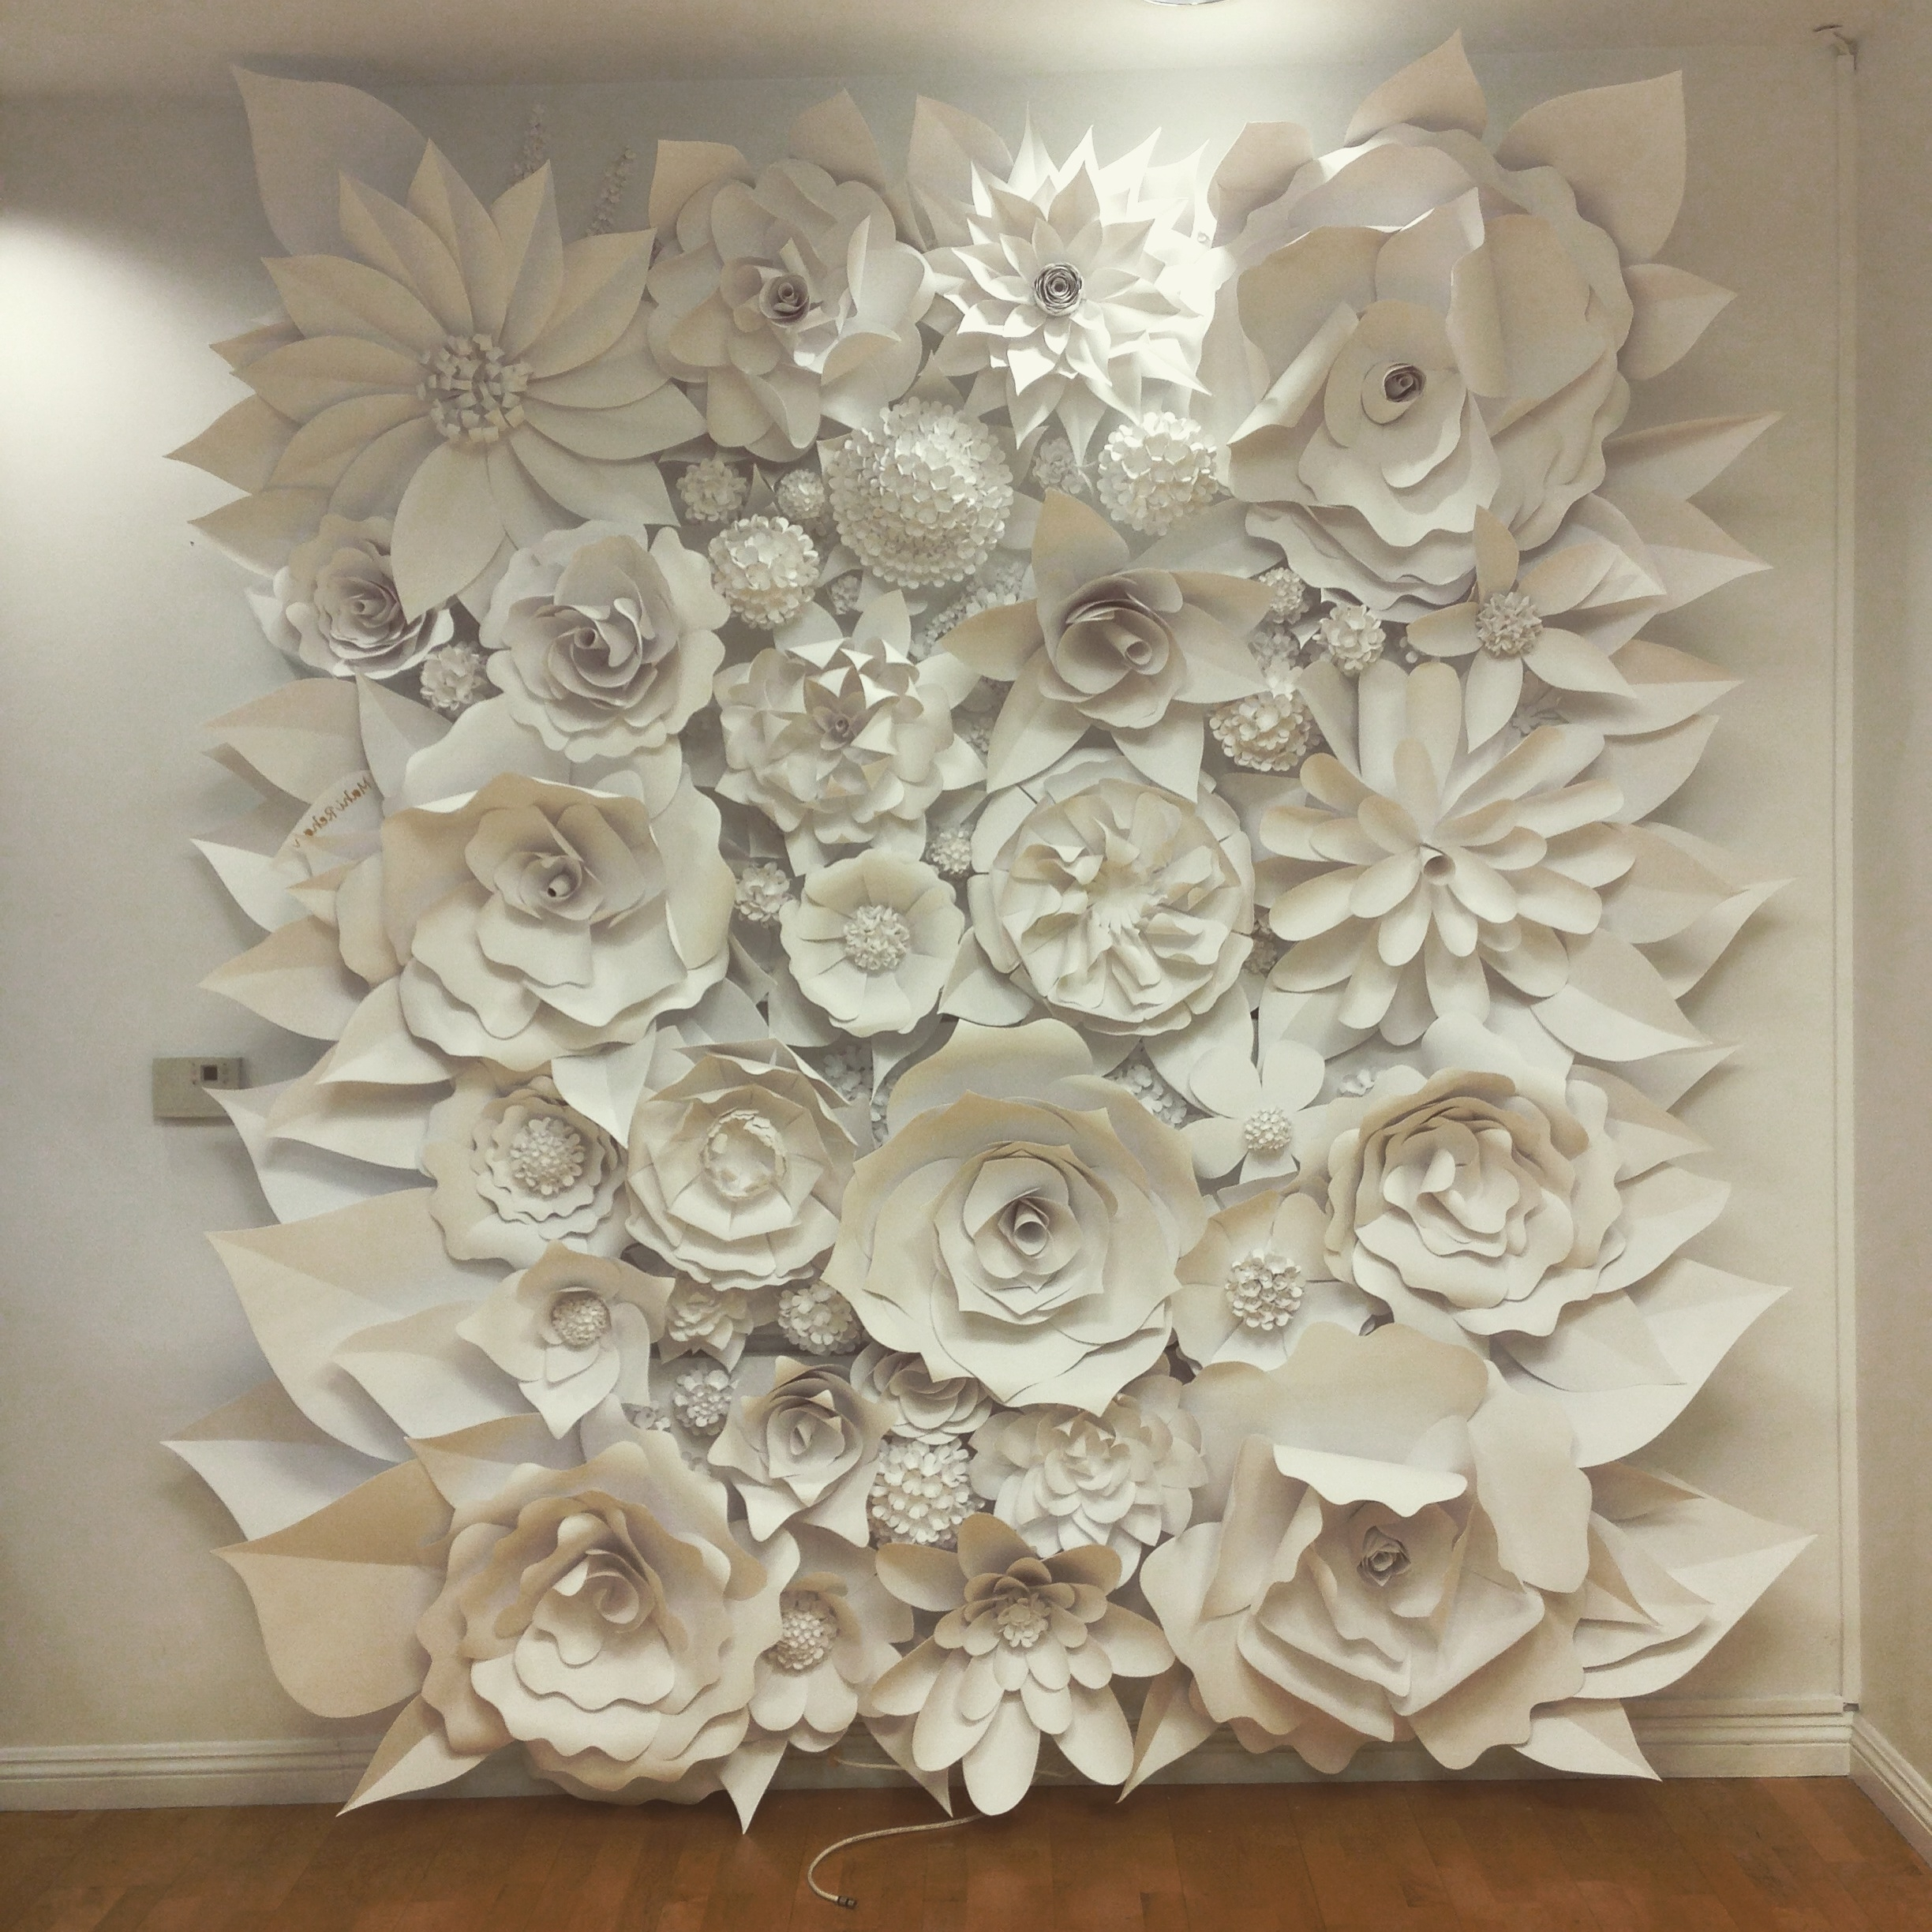 3D Wall Art With Paper Intended For 2018 Diy 3D Flower Canvas Wall Art Diy  Mothers